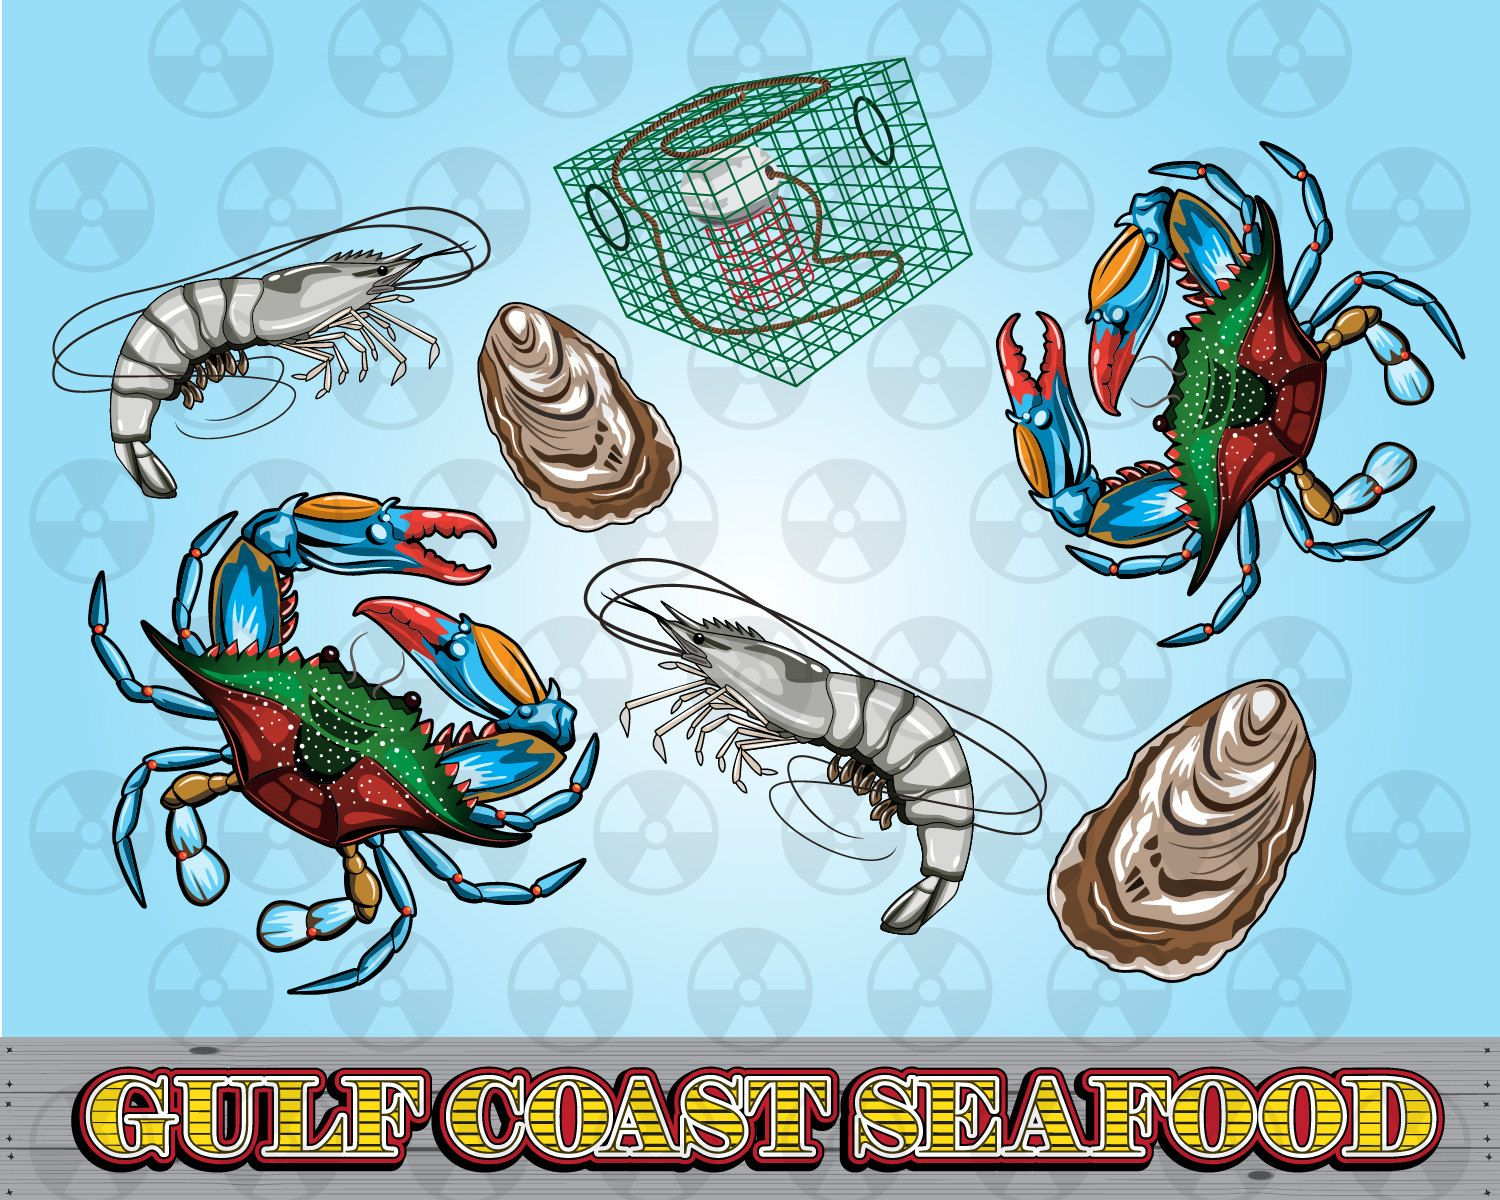 small resolution of louisiana vector clipart gulf coast clipart blue crab digital cartoon seafood clipart scrapbook making instant download by digitalmeltdown on etsy